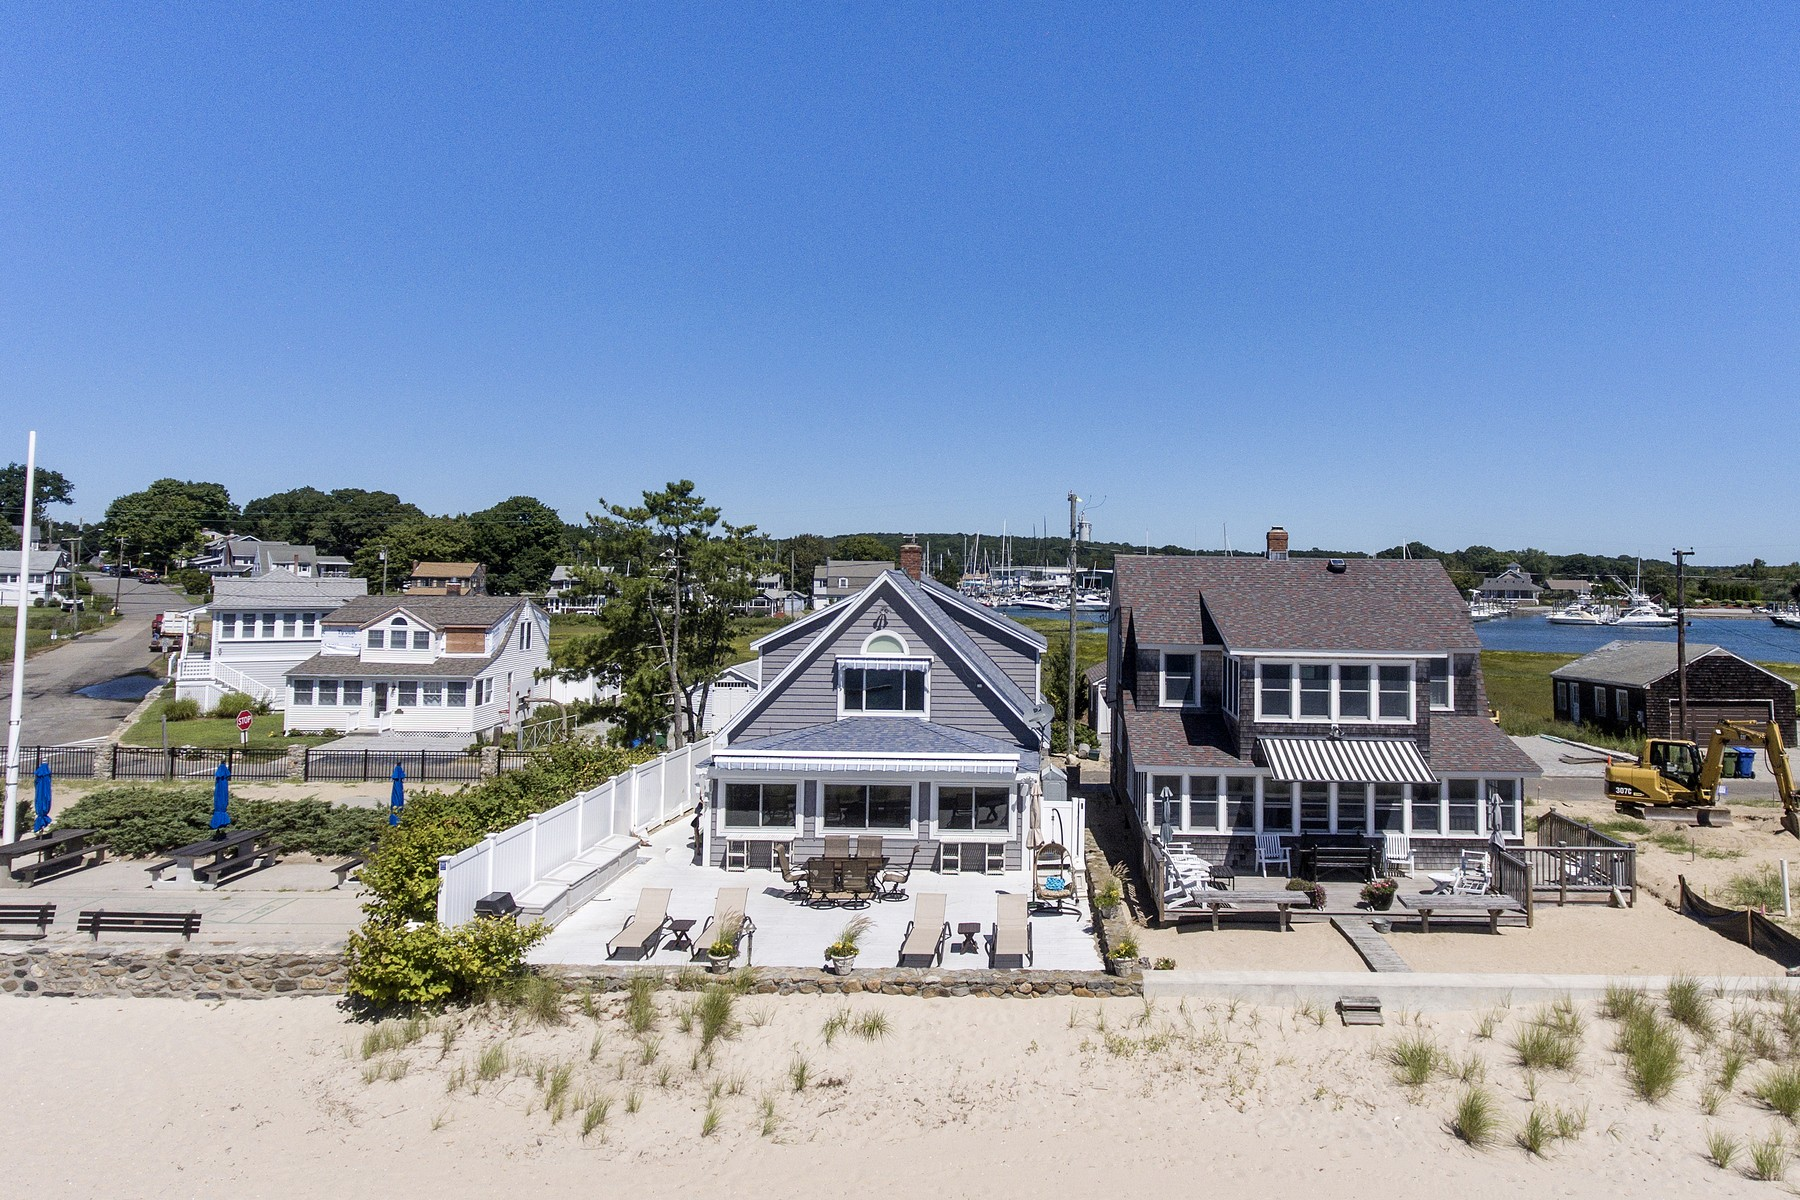 Casa Unifamiliar por un Venta en A True Beach Home, Just one Step to The Sand 105 Old Mail Trl Westbrook, Connecticut, 06498 Estados Unidos